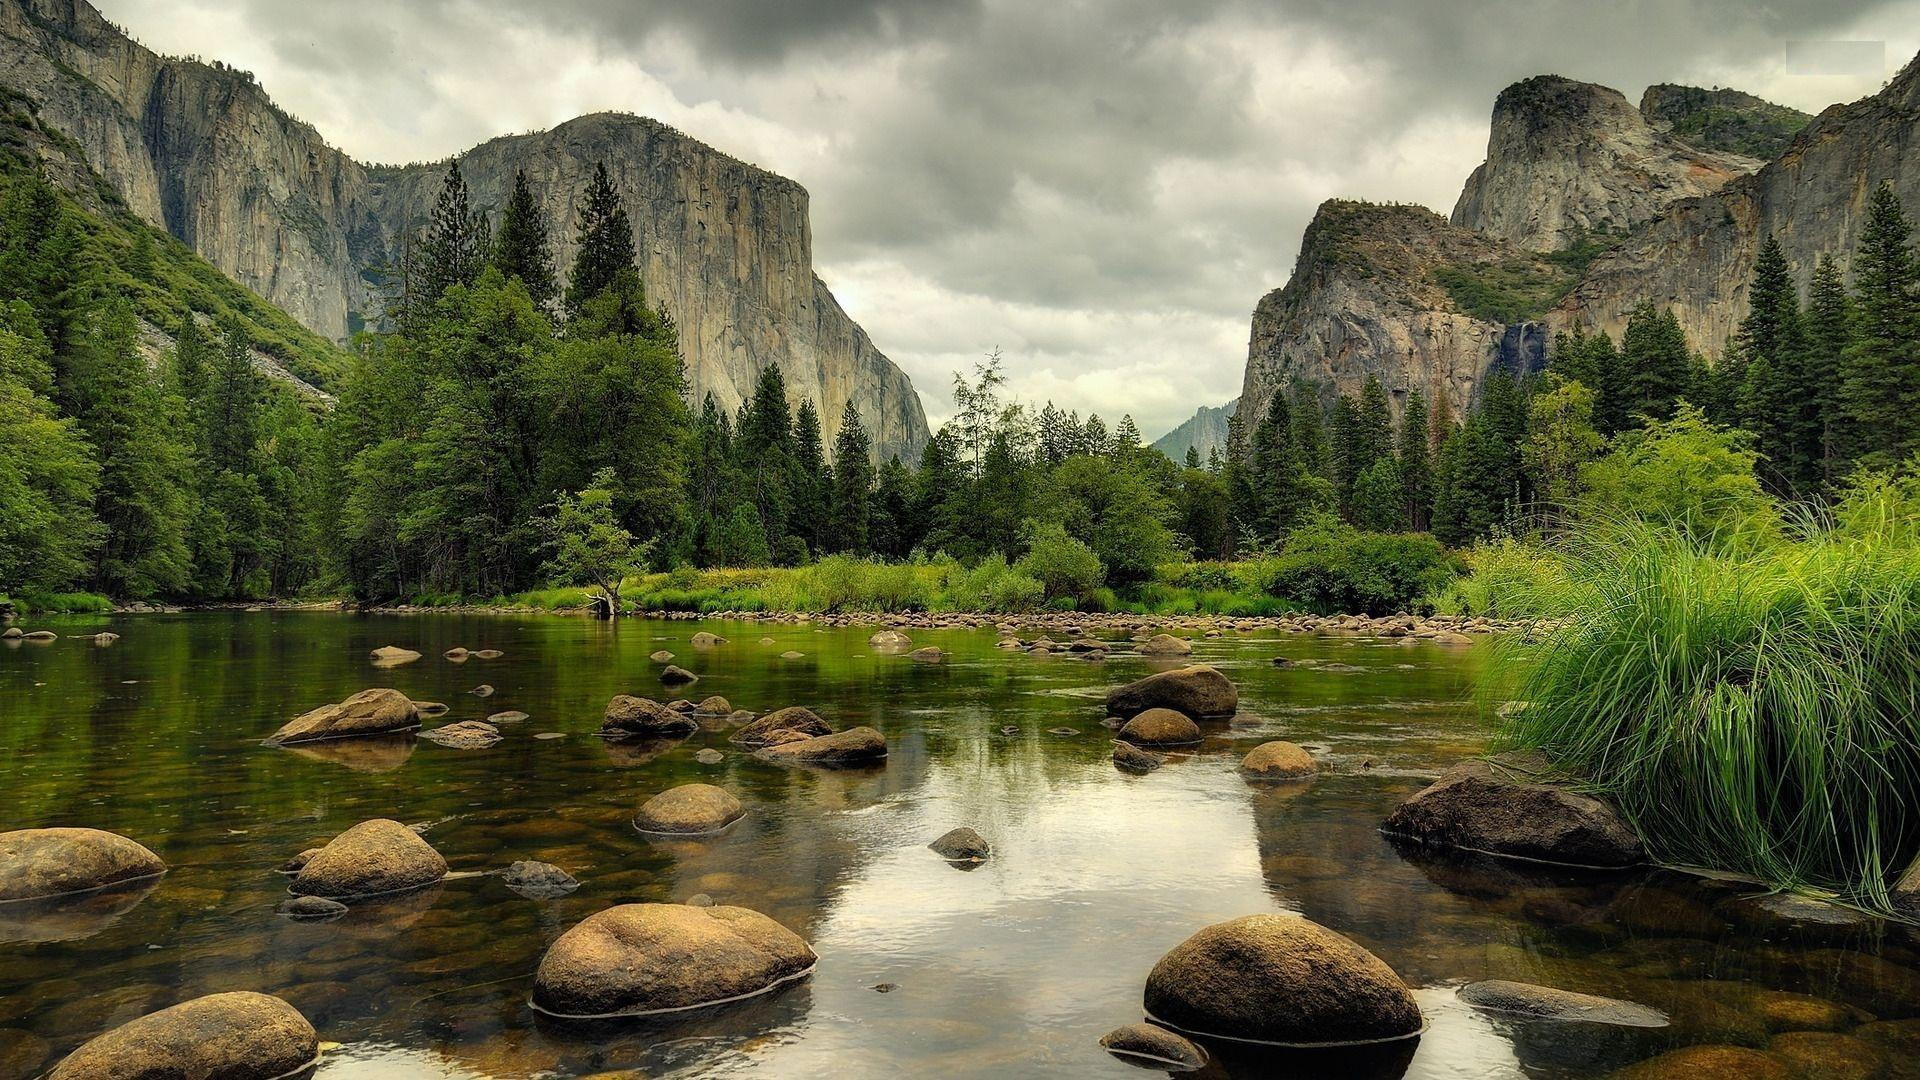 Yosemite National Park Wallpaper HD